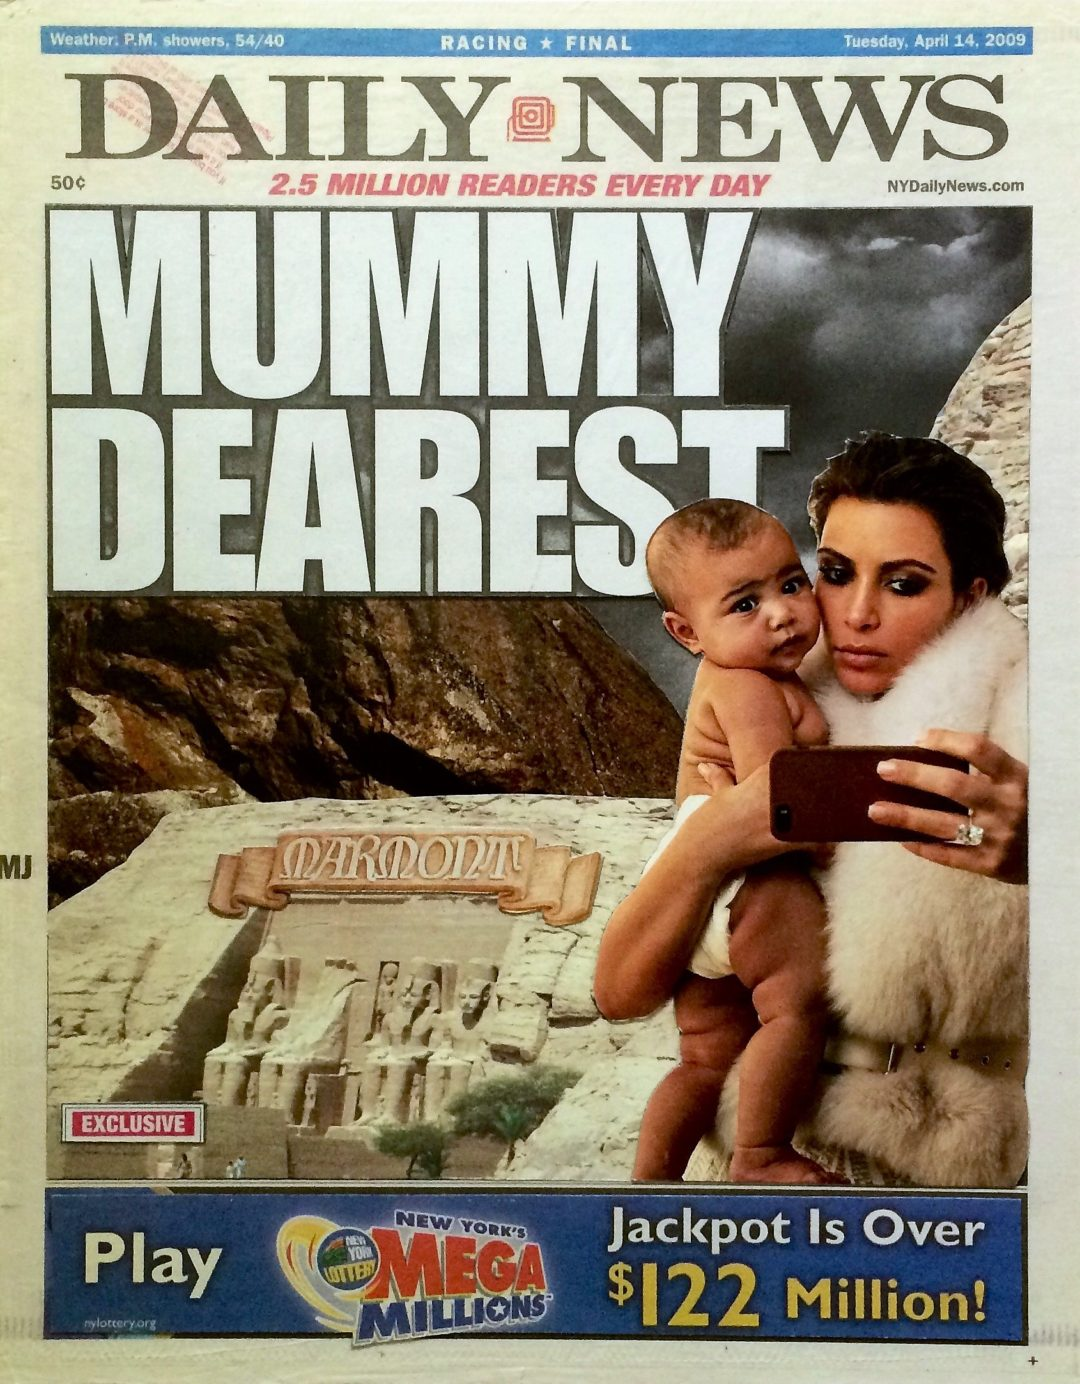 """Daily News/Mummy Dearest"" by Luis Alves Collage"